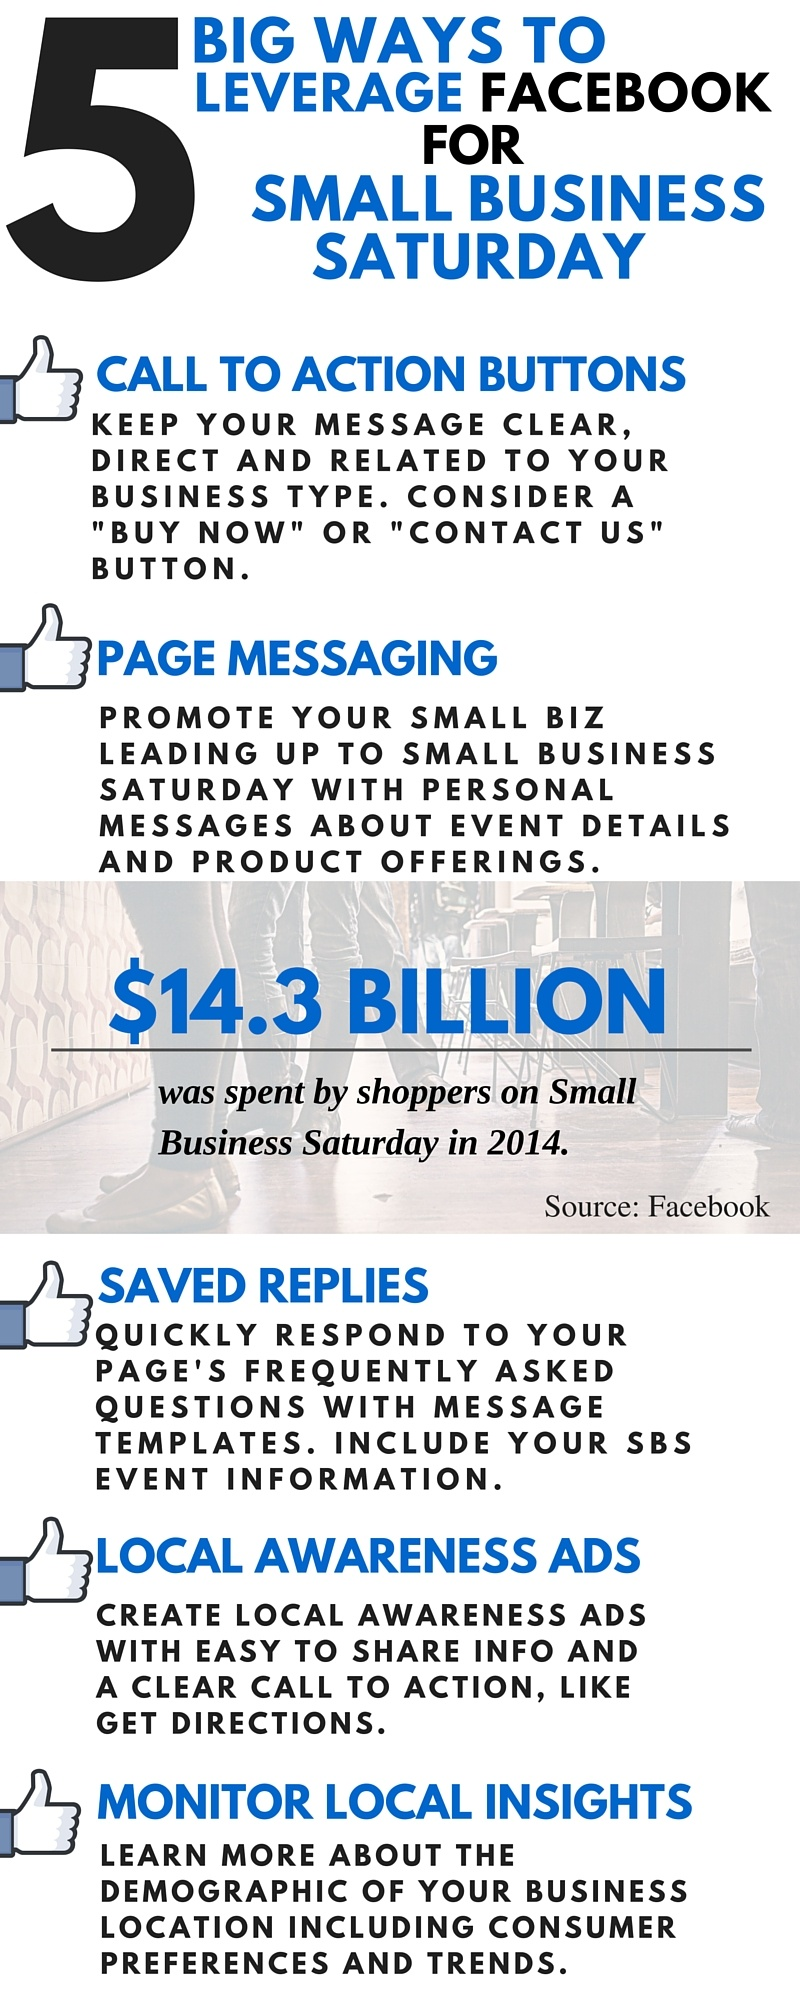 Use Facebook To Boost Small Business Saturday Traffic